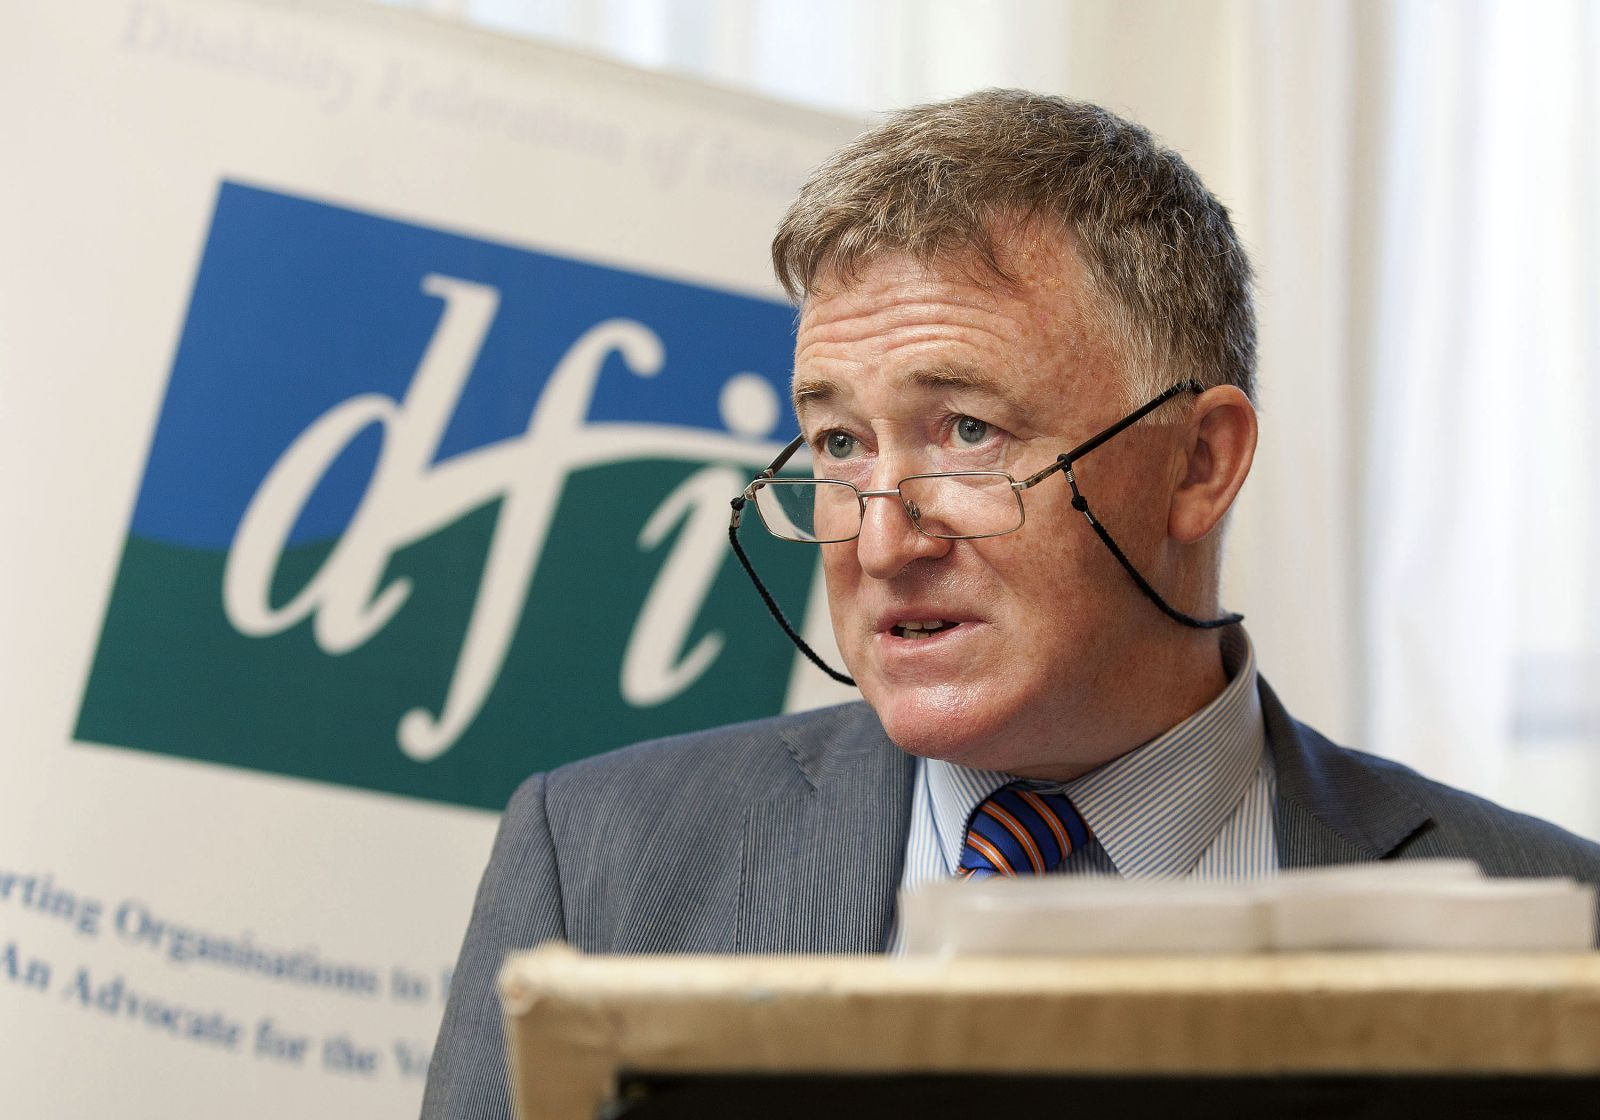 John Dolan, CEO, DFI at Buswells Event, 9th July 2014